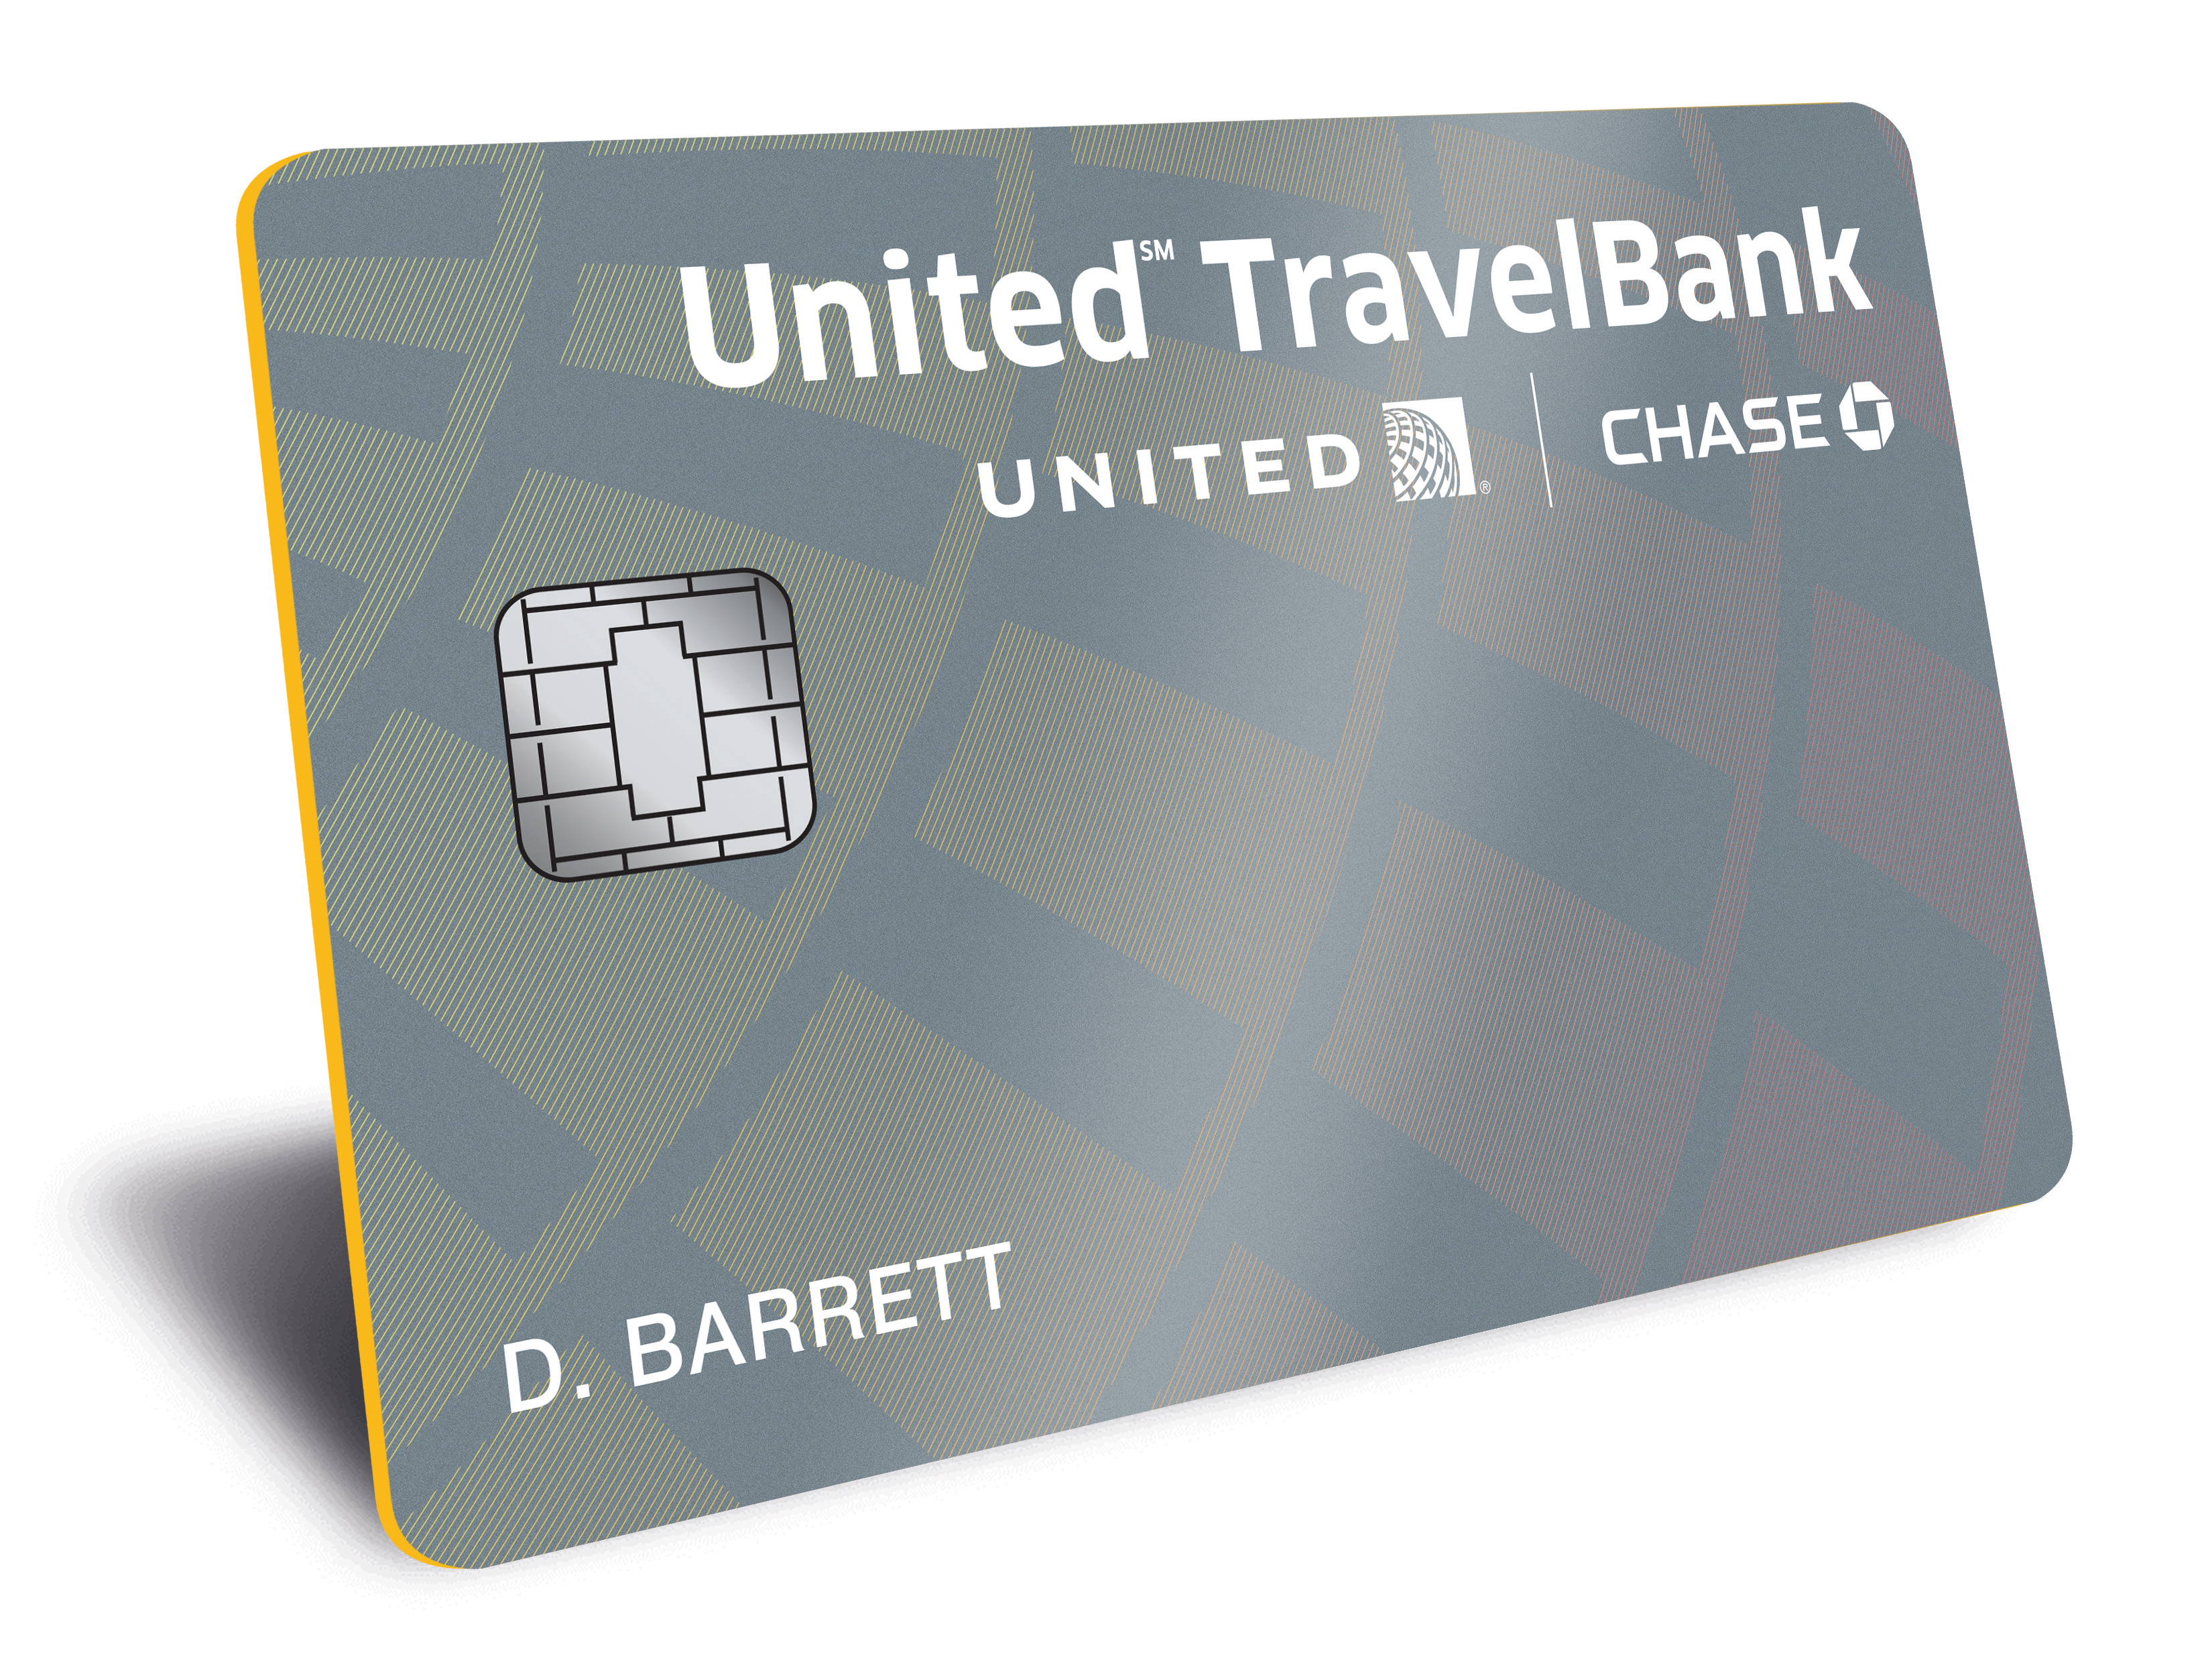 united airlines and chase introduce the united travelbank card a